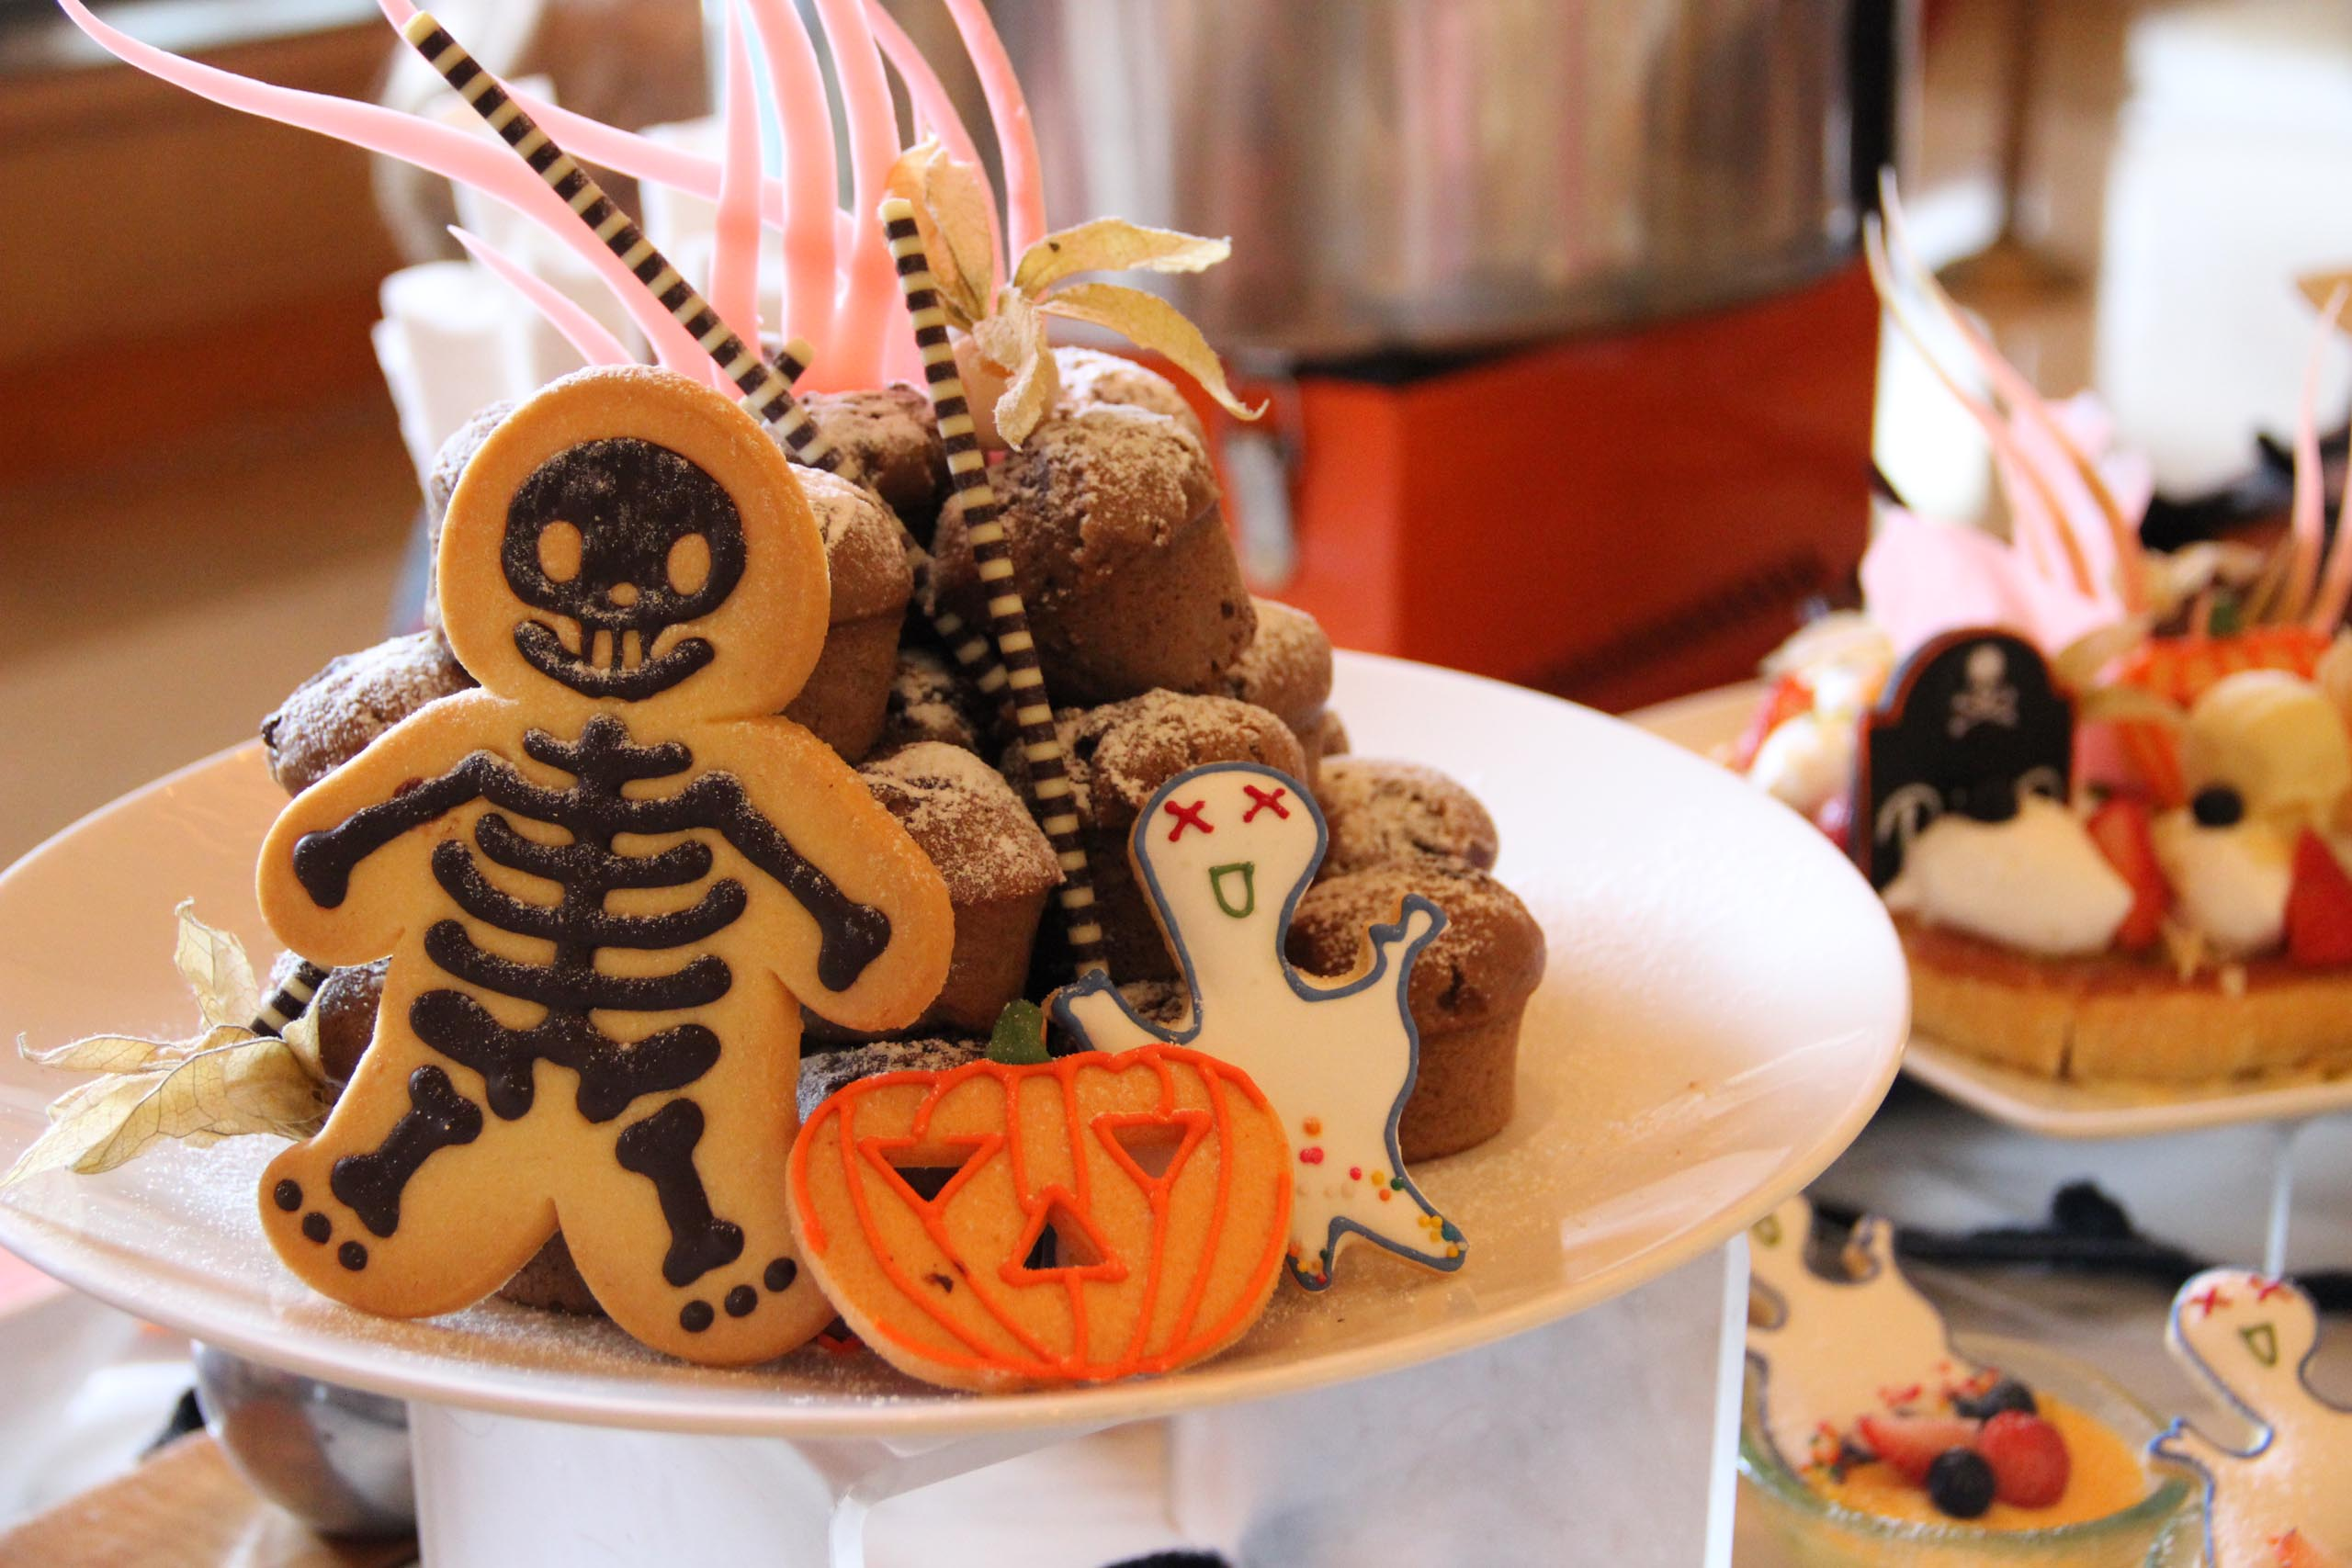 A plate of Halloween cookies and other desserts.